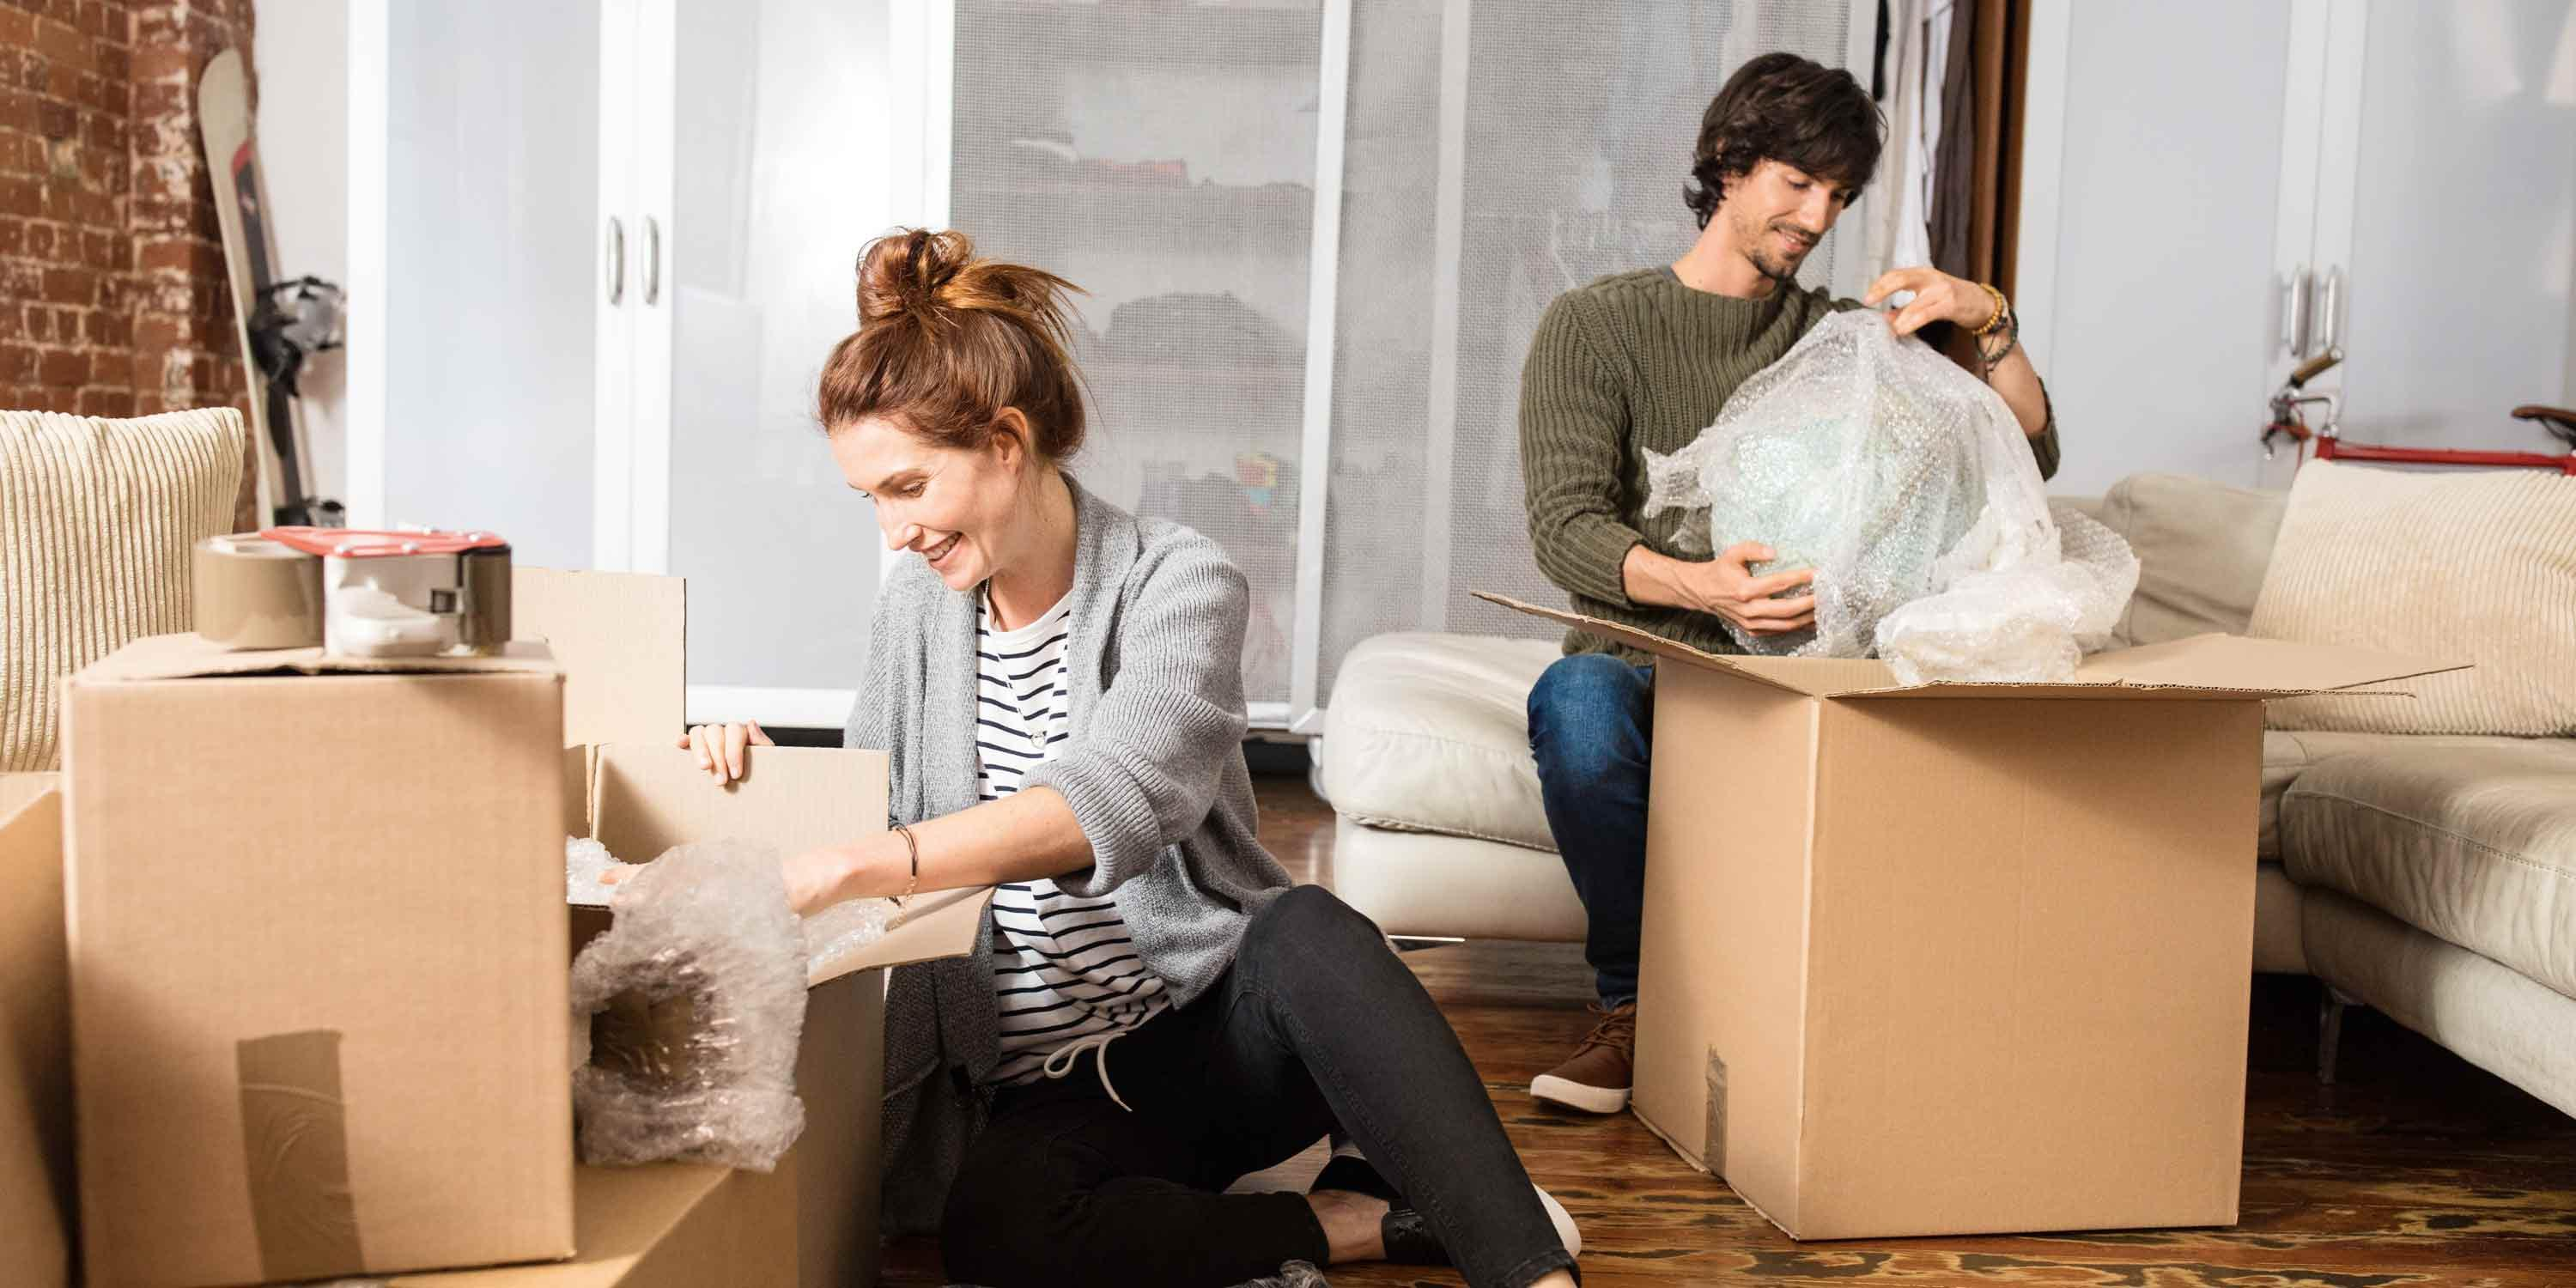 young-couple-unpacks-cartons-moving-boxes